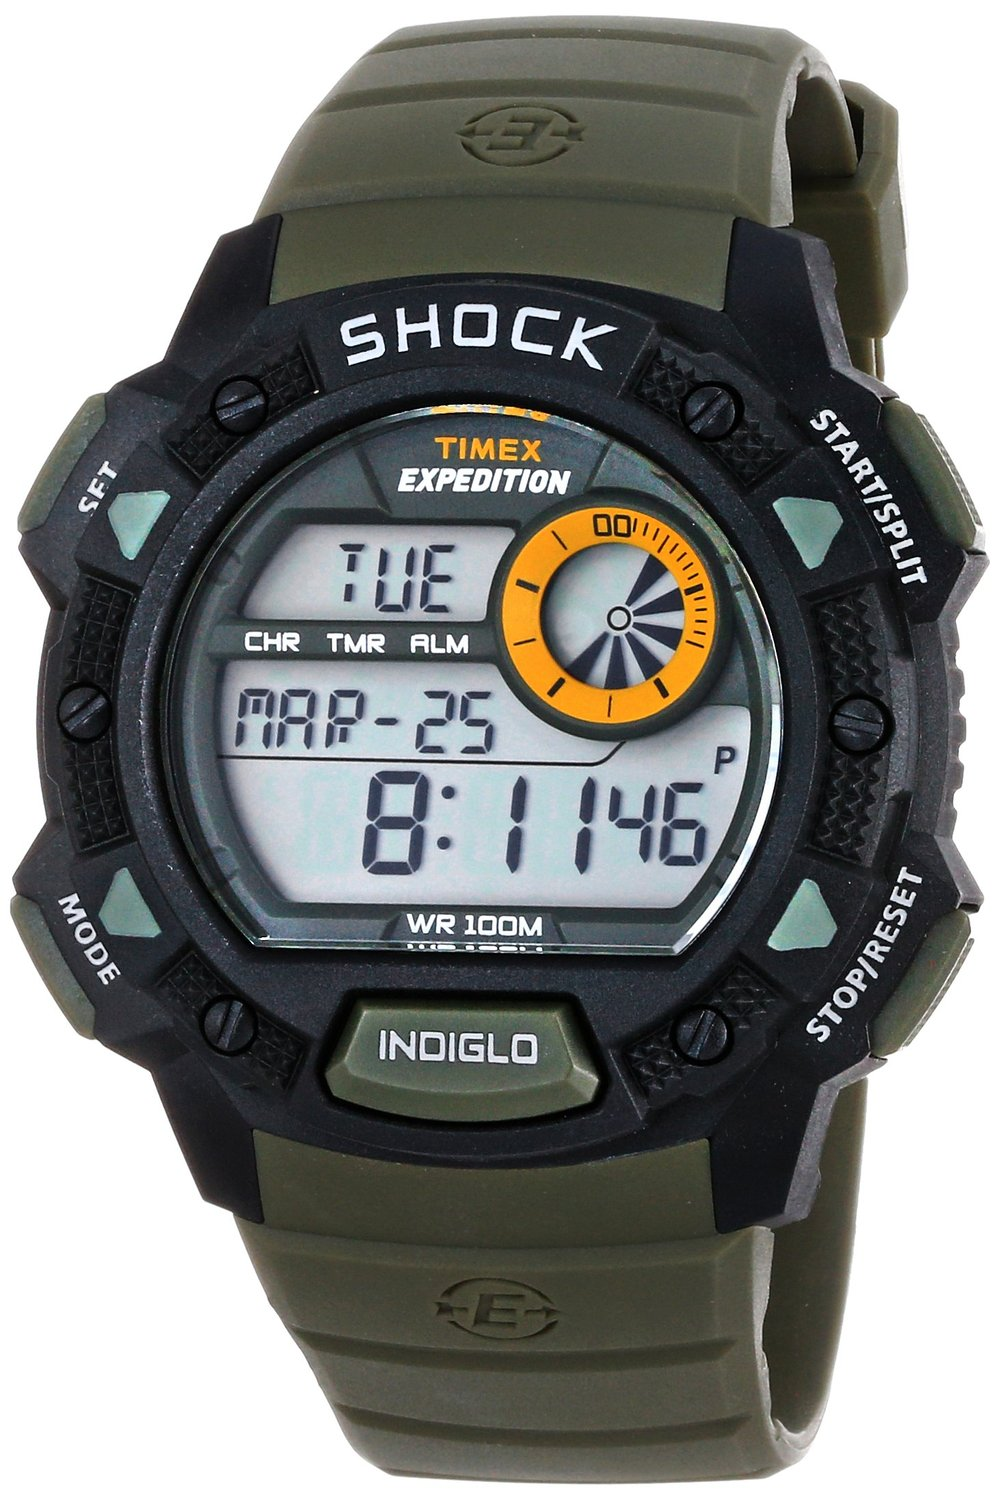 Timex Expedition Men's Digital Sport Watch (T49851GP ... |Timex Expedition Digital Watches Men